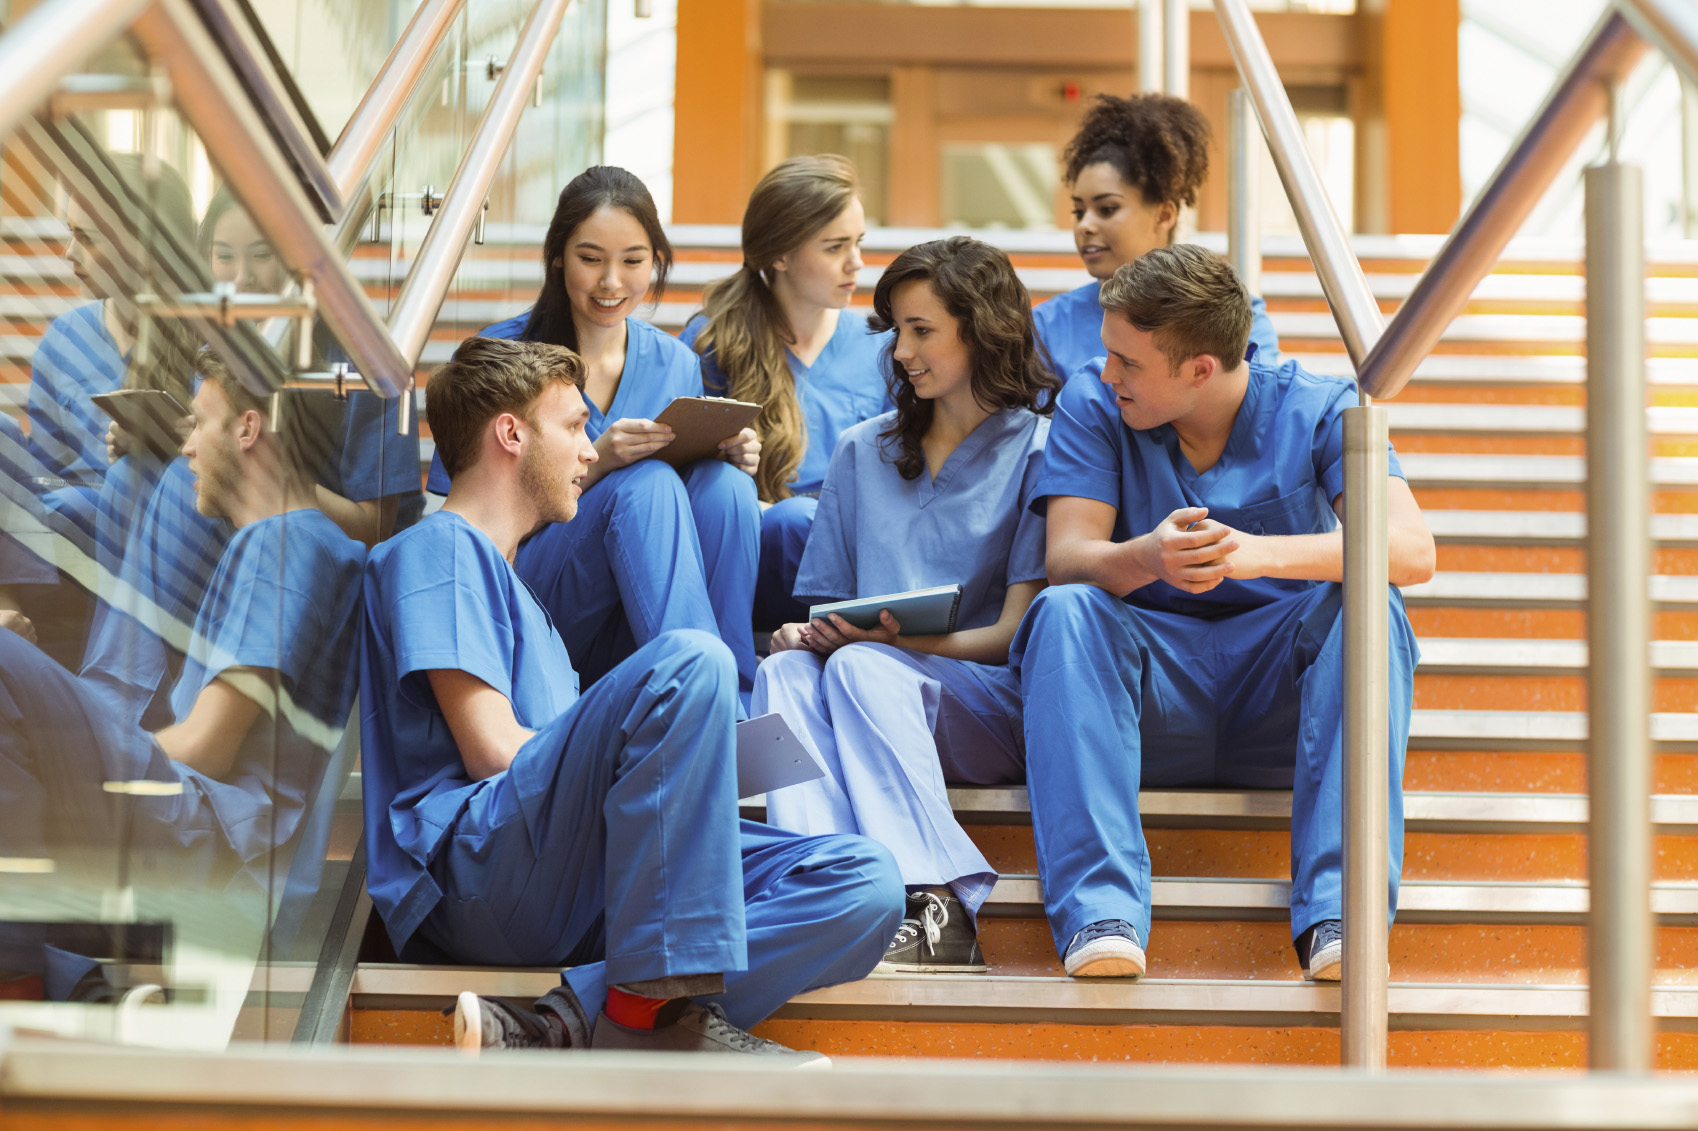 Future NYC Doctors Awarded Scholarships for Med School